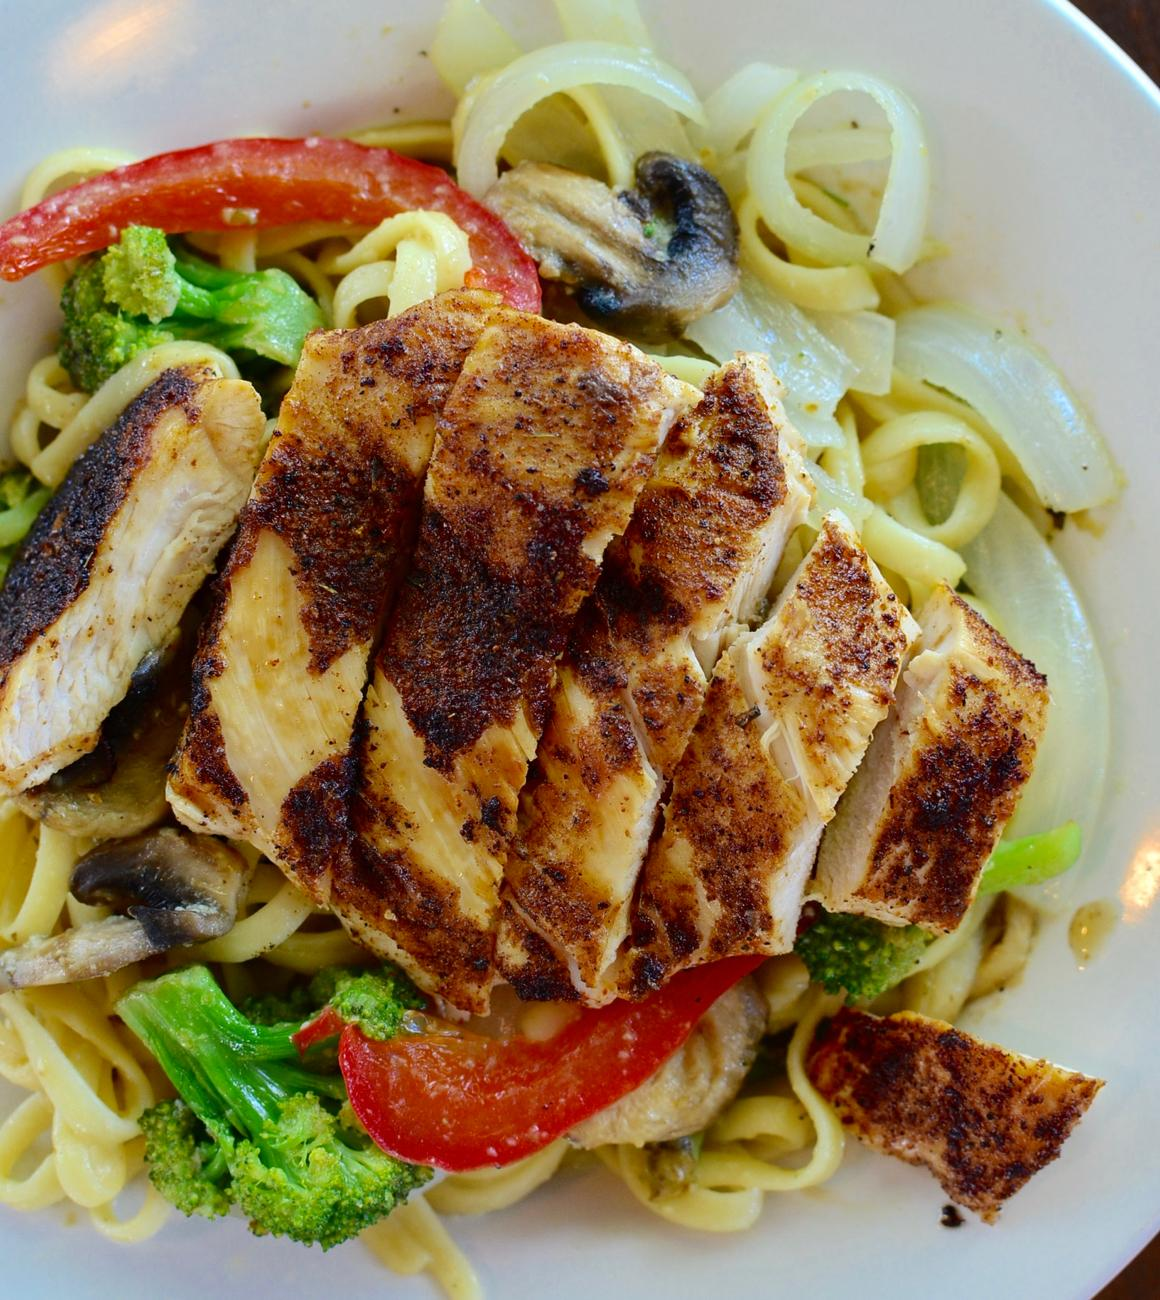 Garlic Wine Pasta: tender linguini in a sauce of white wine, virgin olive oil, garlic and herbs tossed with garden fresh broccoli, onions, mushrooms, blackened chicken, and red & green peppers / Image: Leah Zipperstein, Cincinnati Refined // Published: 6.21.17